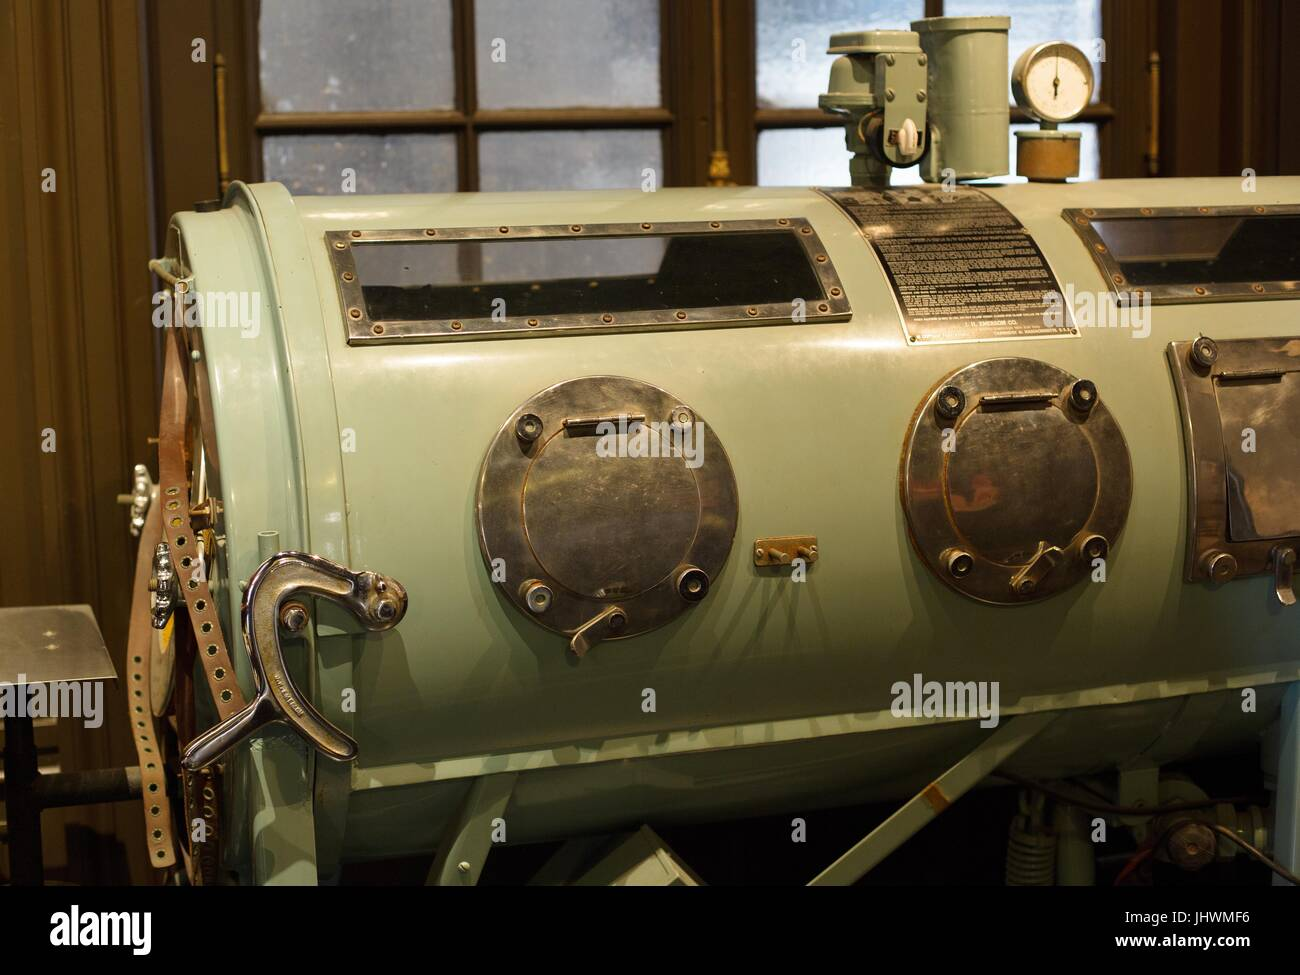 An antique iron lung, on display at the International Museum of Surgical Sciences in Chicago, Illinois, USA. - Stock Image